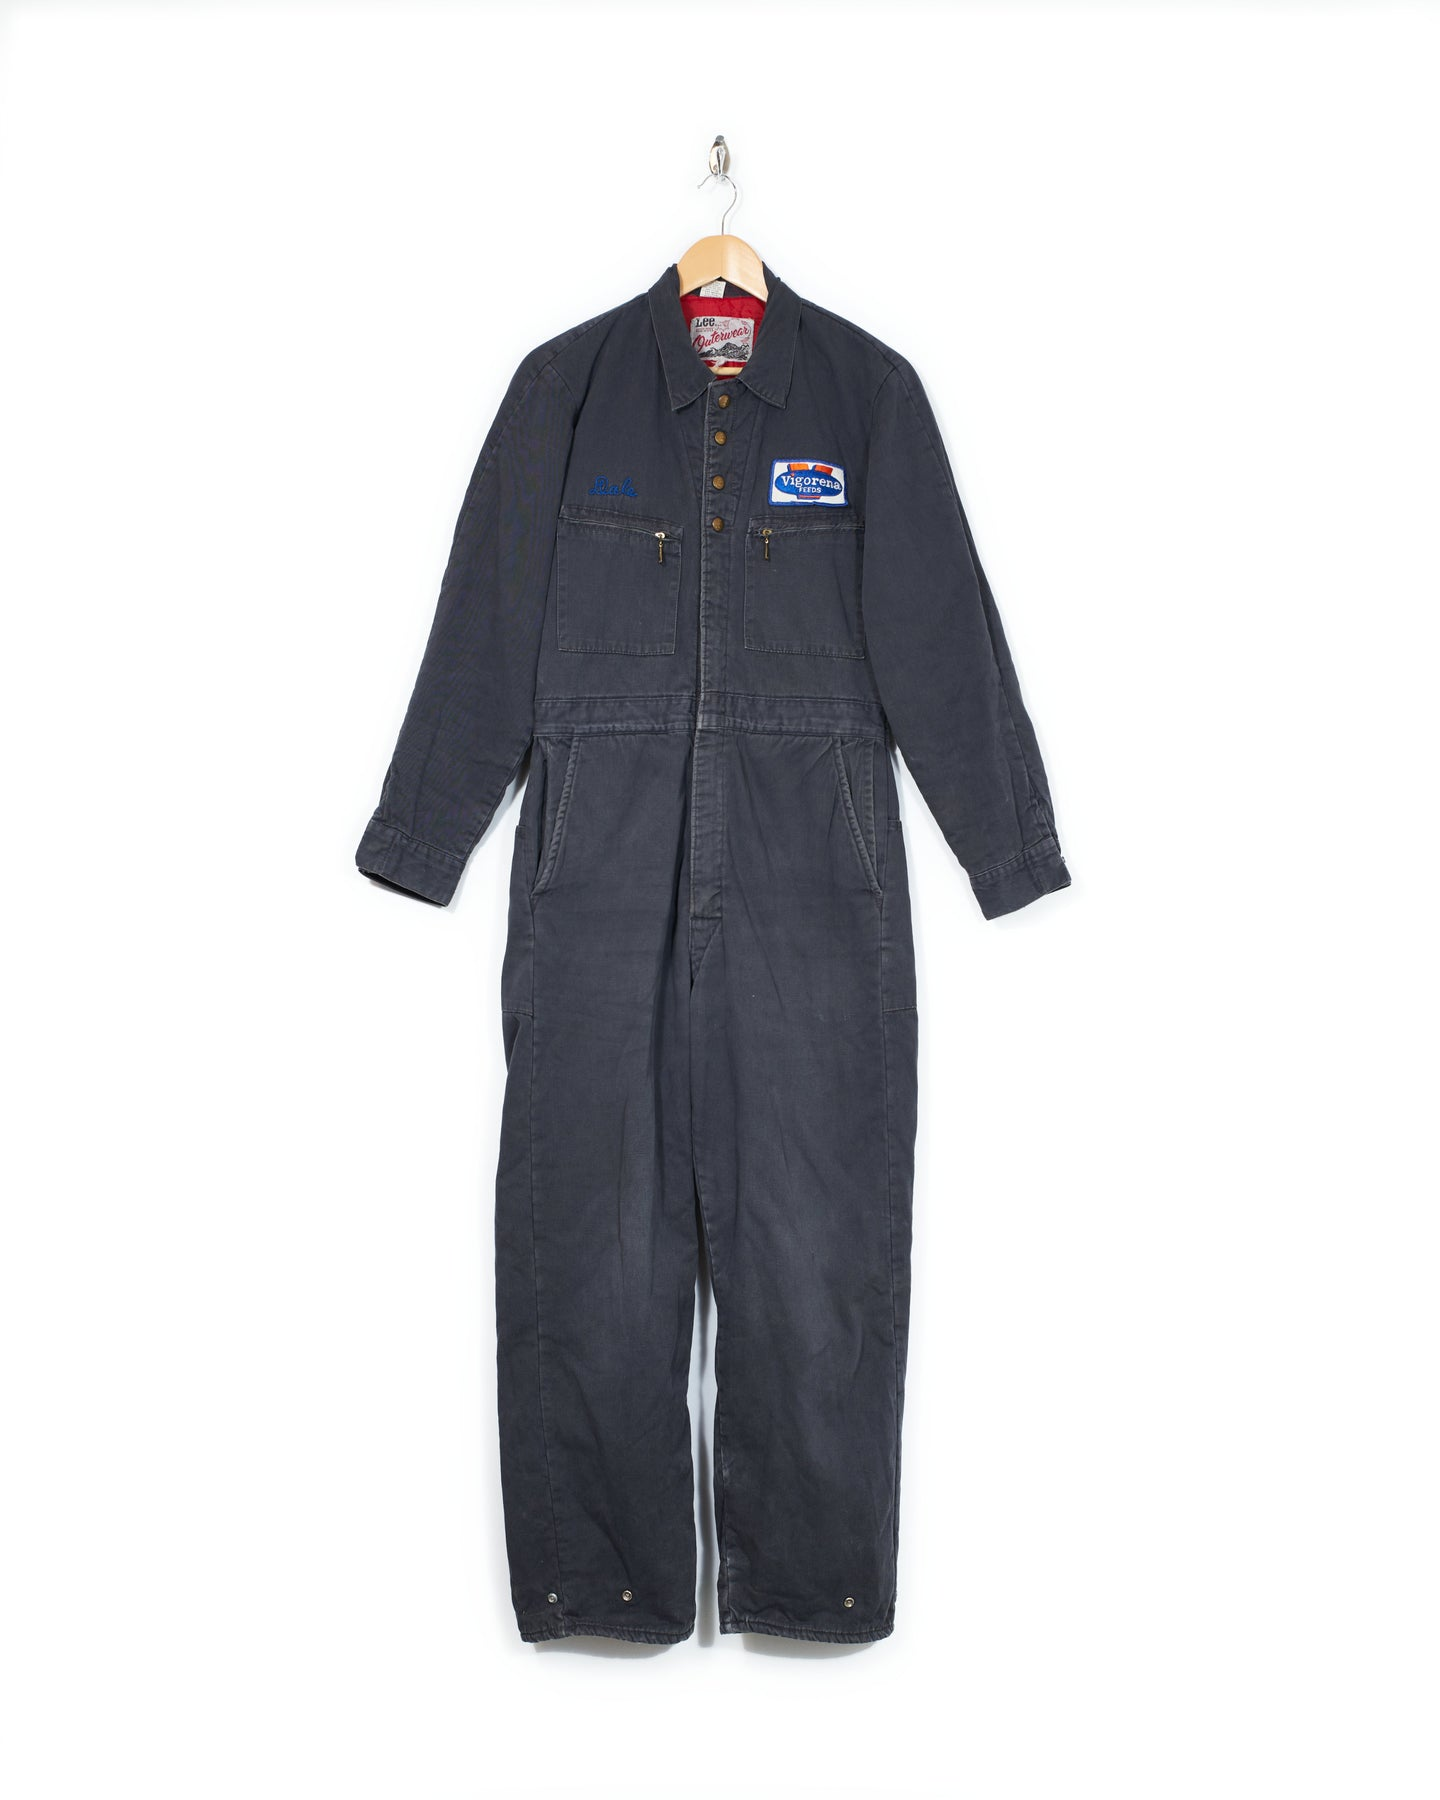 Union Made Lee Coveralls